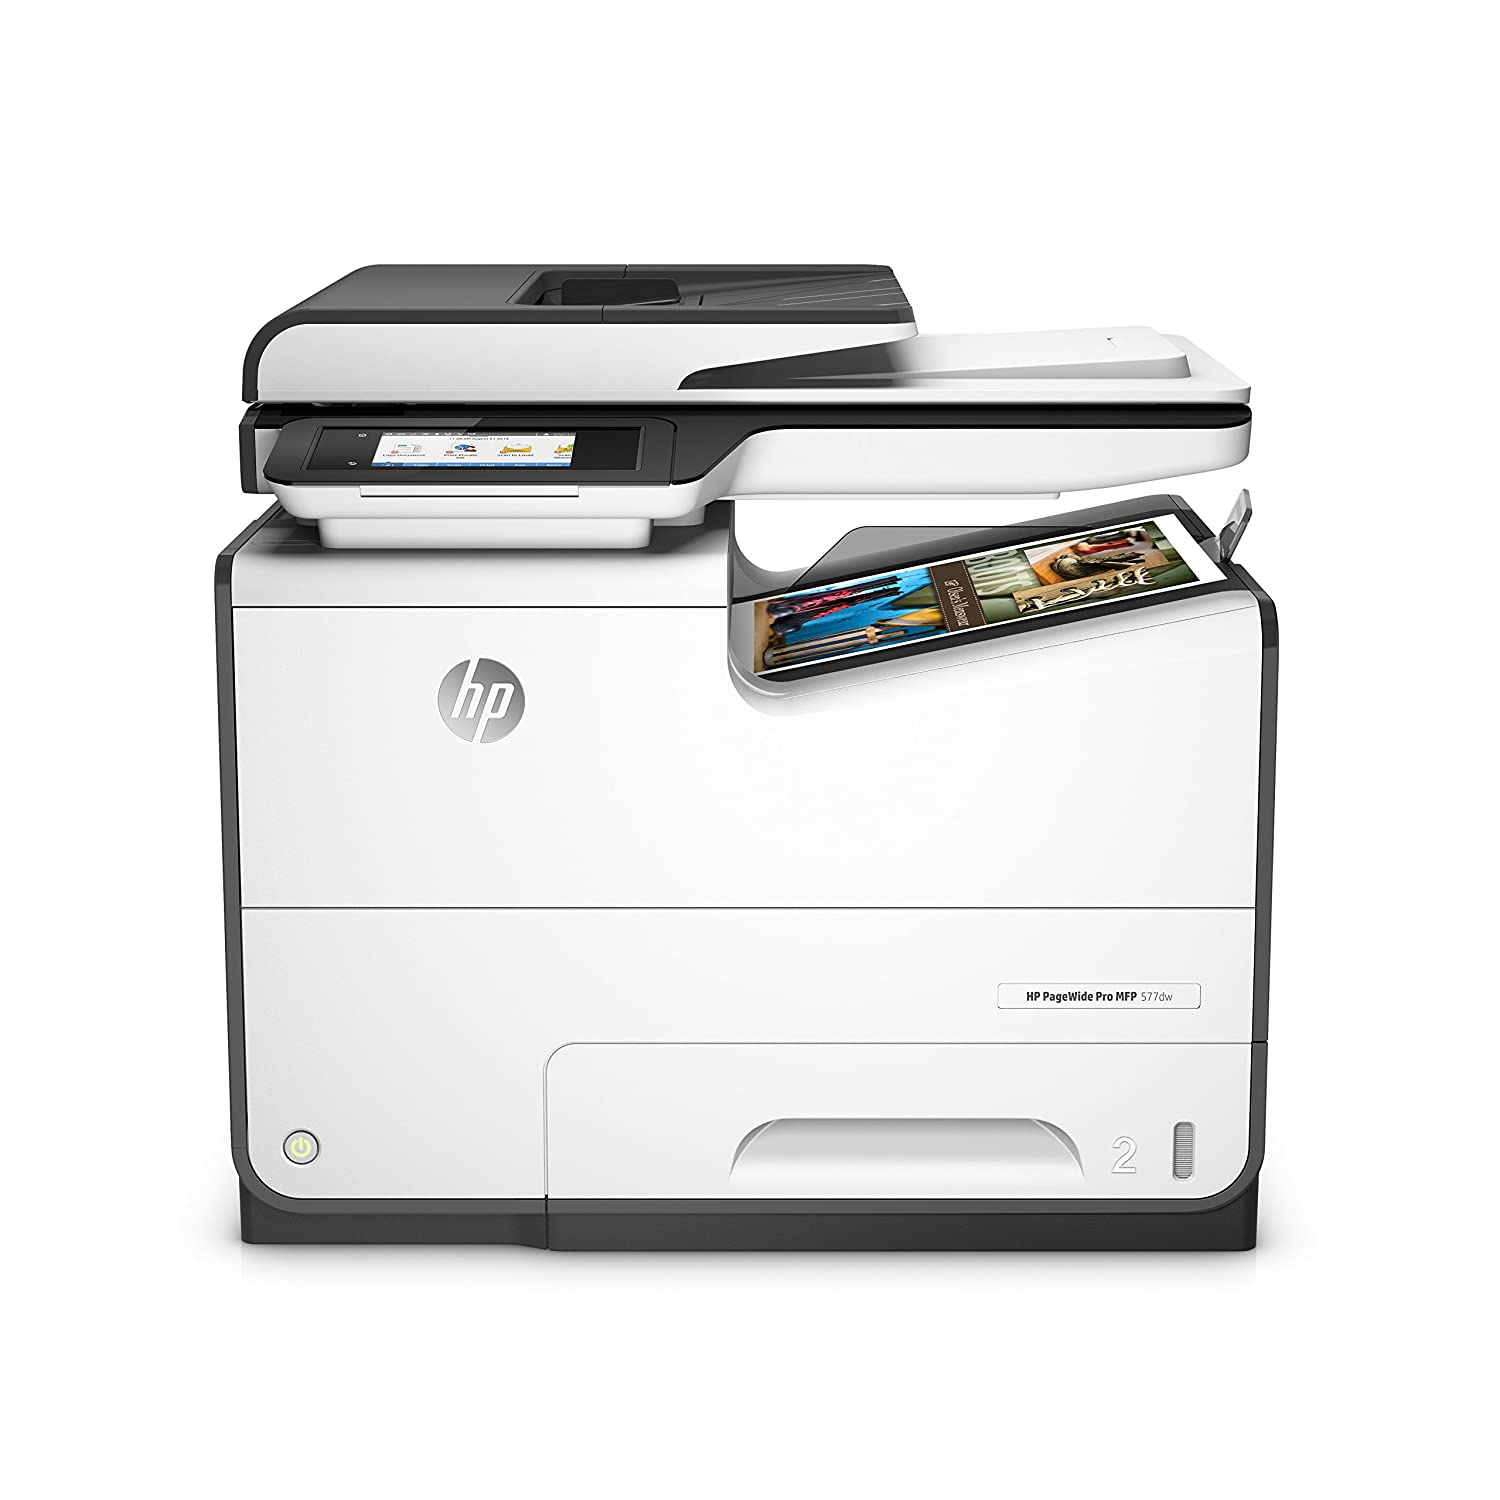 Color printing cost per page in india - Amazon Com Hp Pagewide Pro 577dw Color Printer Scanner Copier Double Sided Printer Wireless Printer Electronics